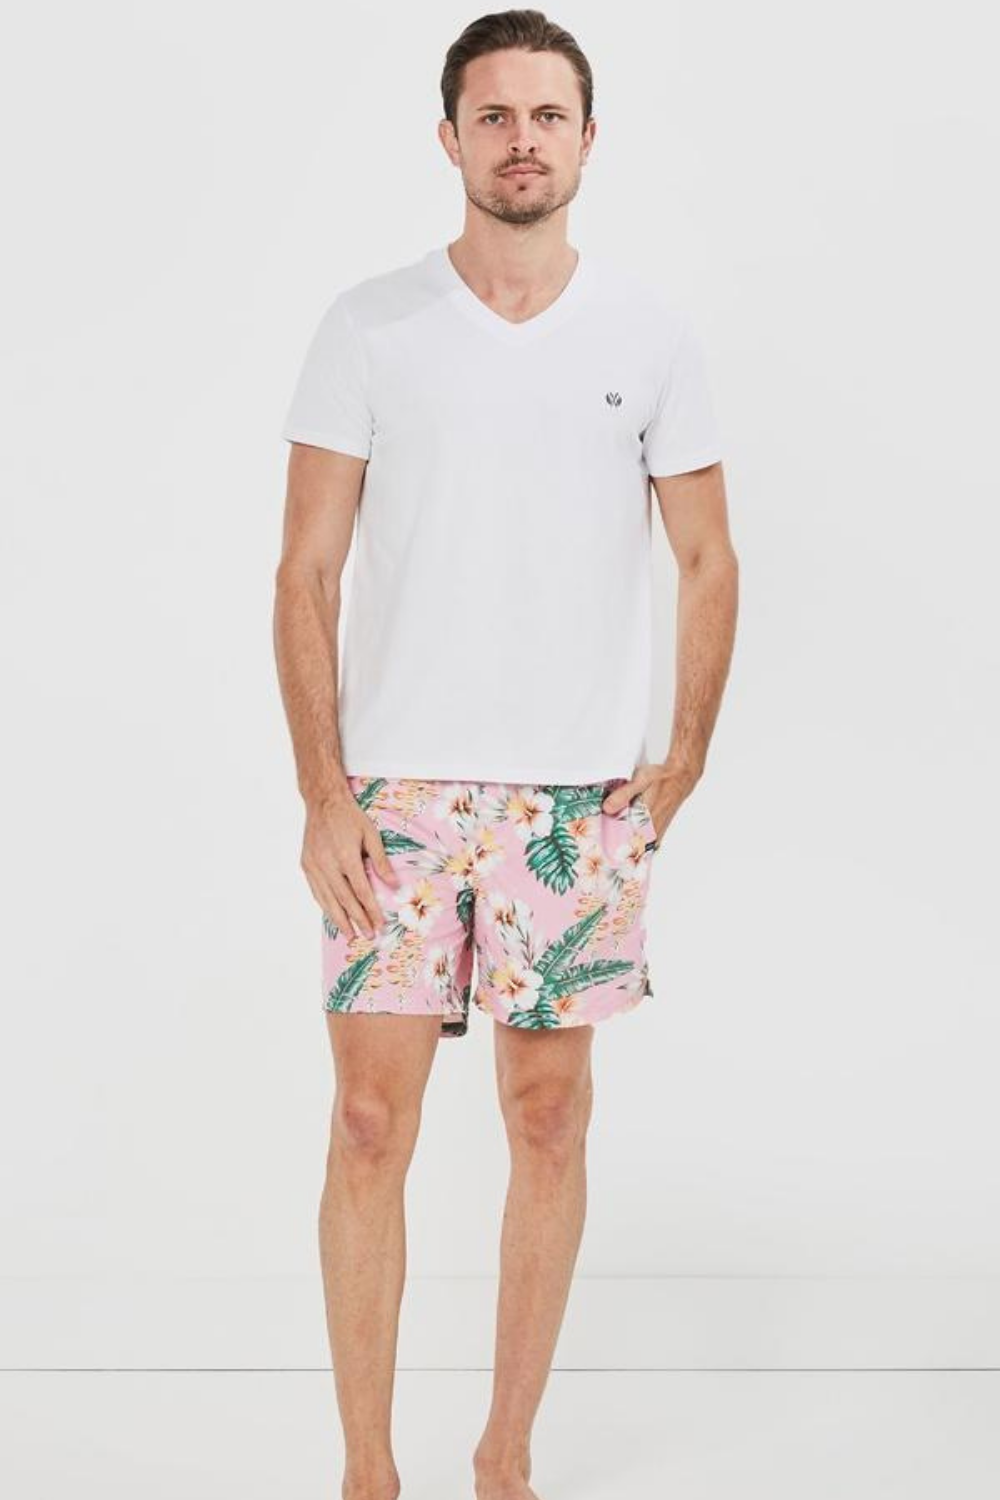 Coast Clothing Hawaiian Sand Board Shorts